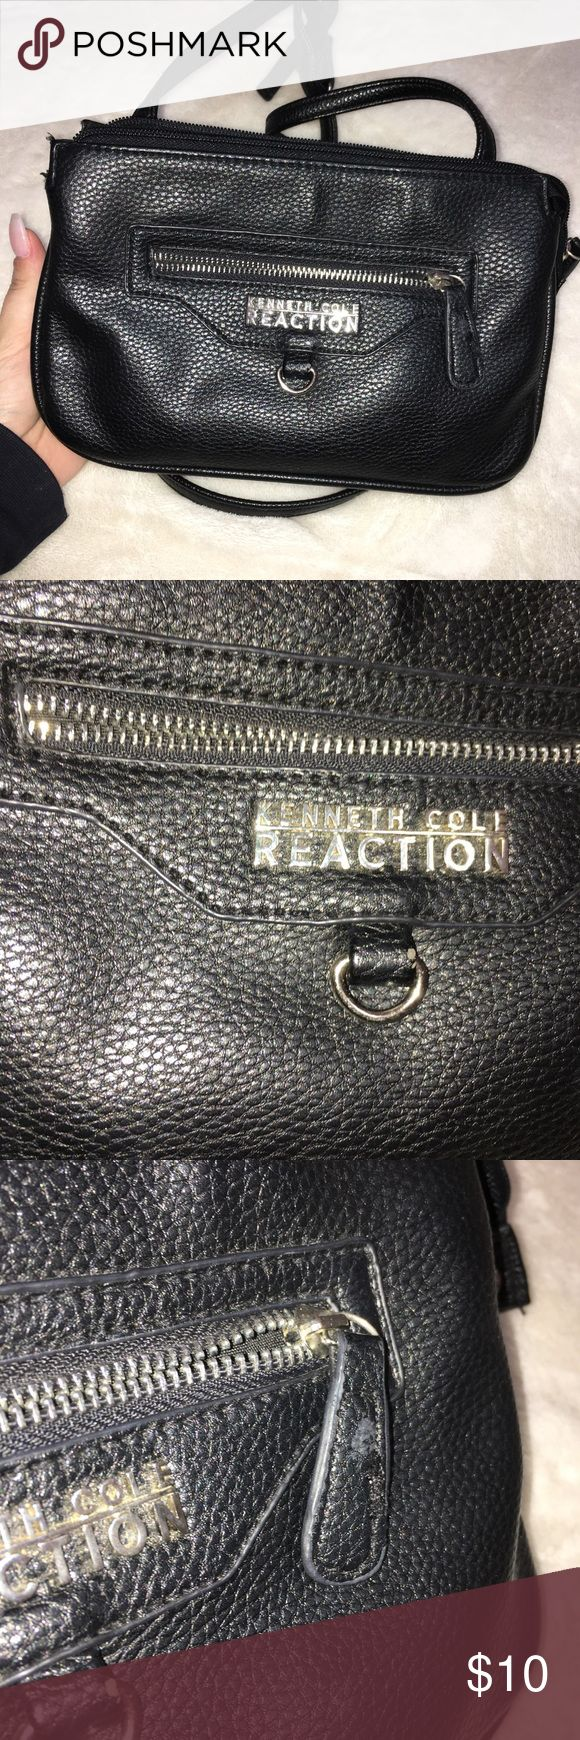 KENNETH COLE Black Cross-body Bag -front pocket with interior pockets and a interior division slot -leather look (not real leather)  -I tied shoulder strap but it can be undone and adjusted  🎉negotiable🎉 Bags Crossbody Bags